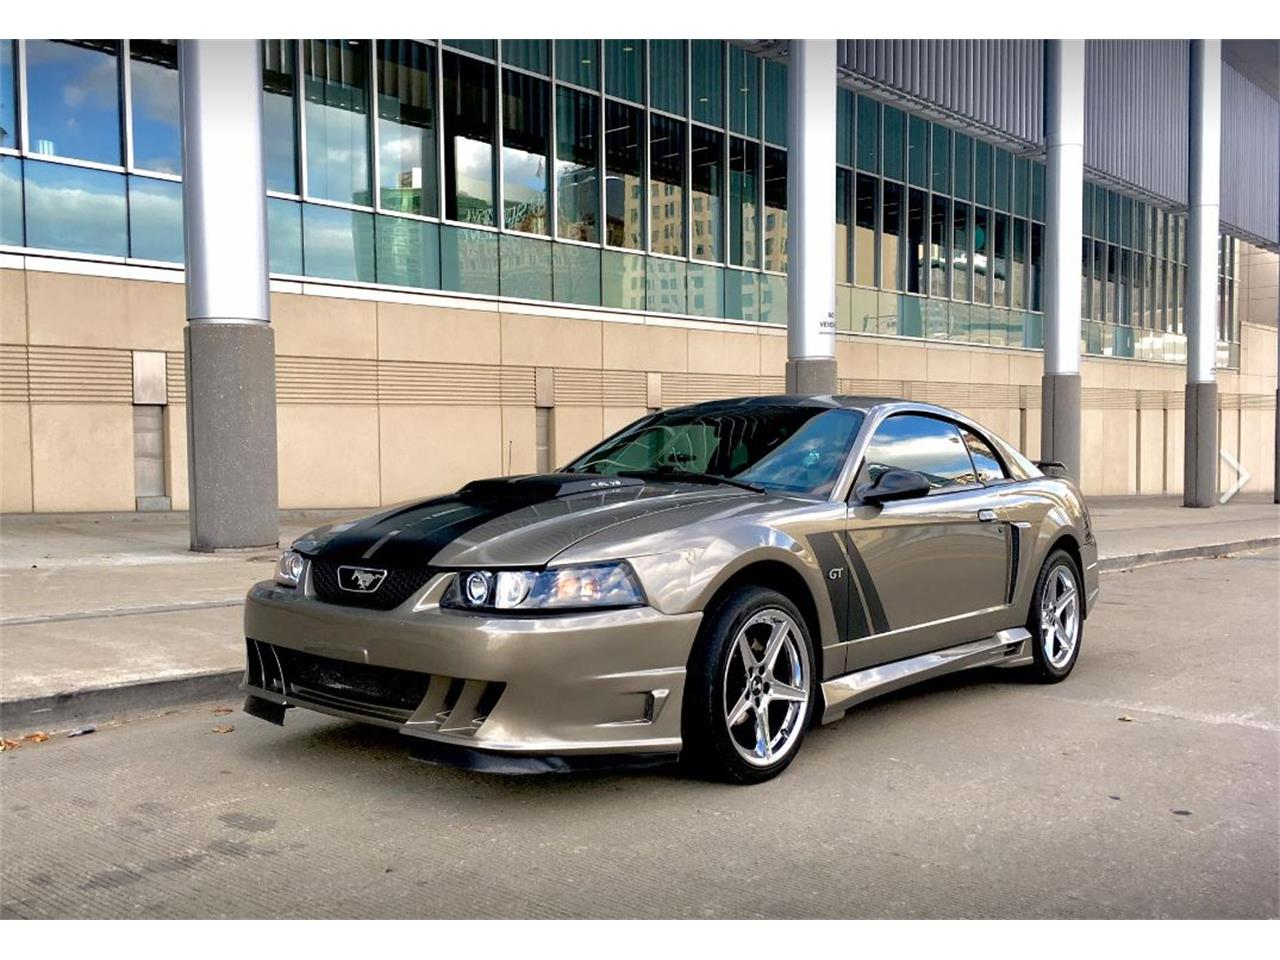 Large Picture Of 02 Mustang Gt Nuqw